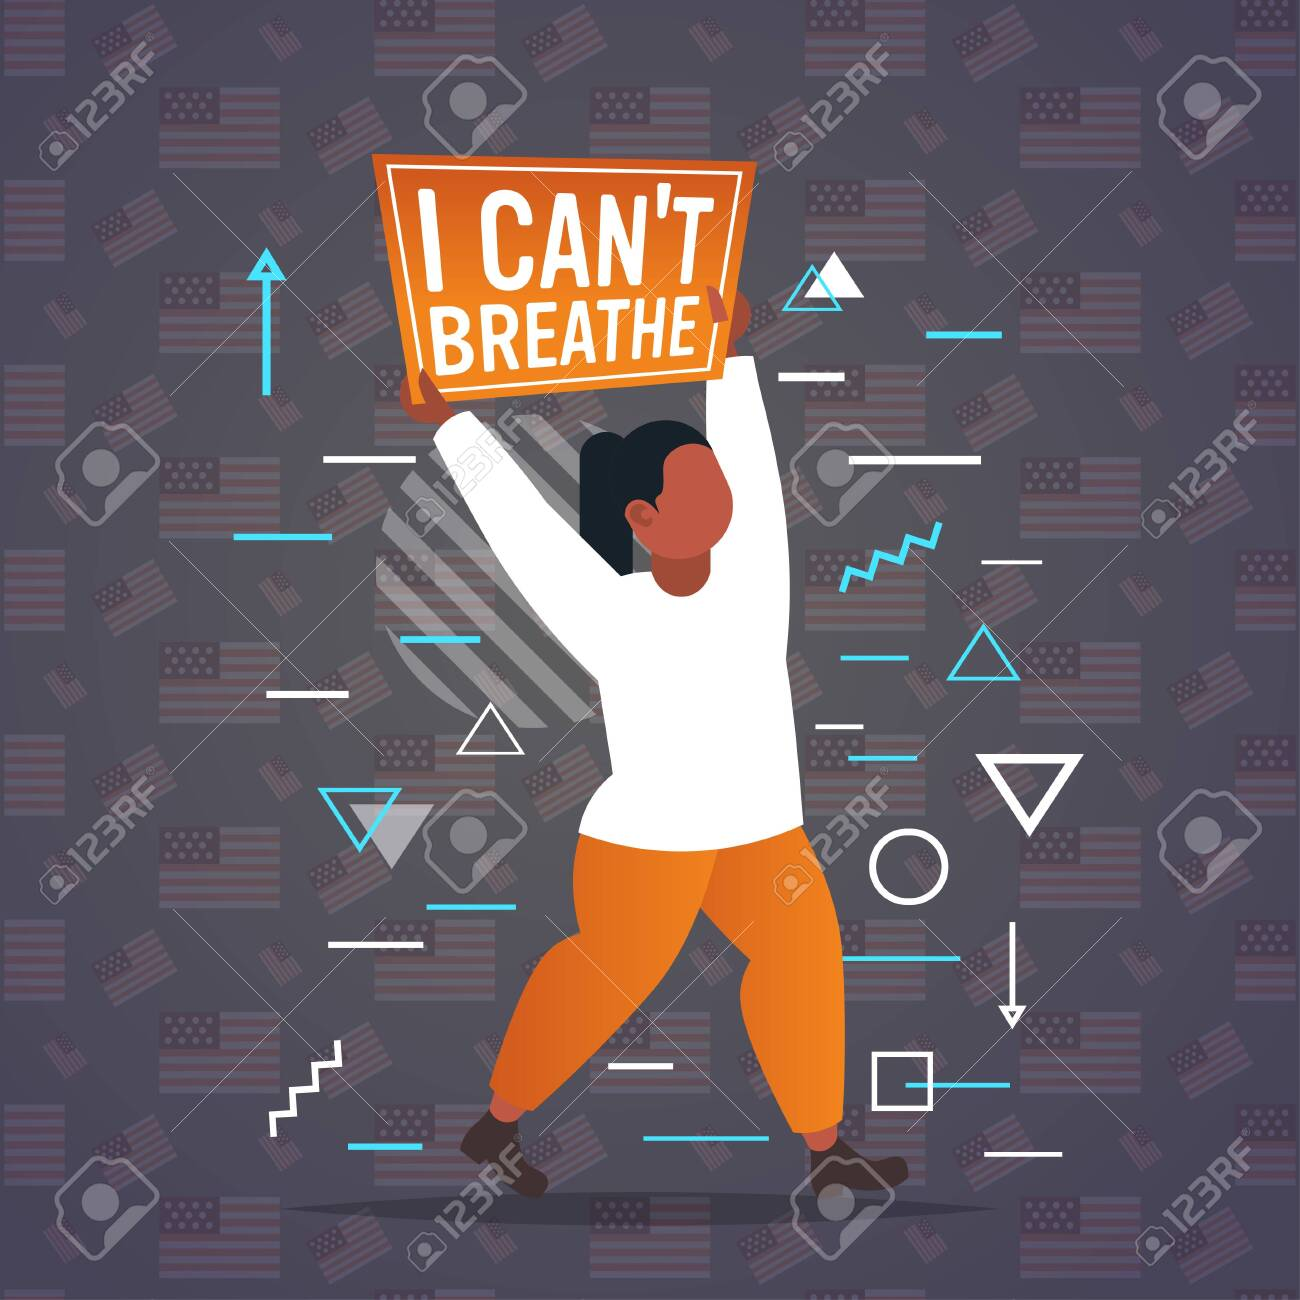 african american woman holding i cant breathe banner black lives matter campaign against racial discrimination of dark skin color support for equal rights of black people full length vector illustration - 149310399